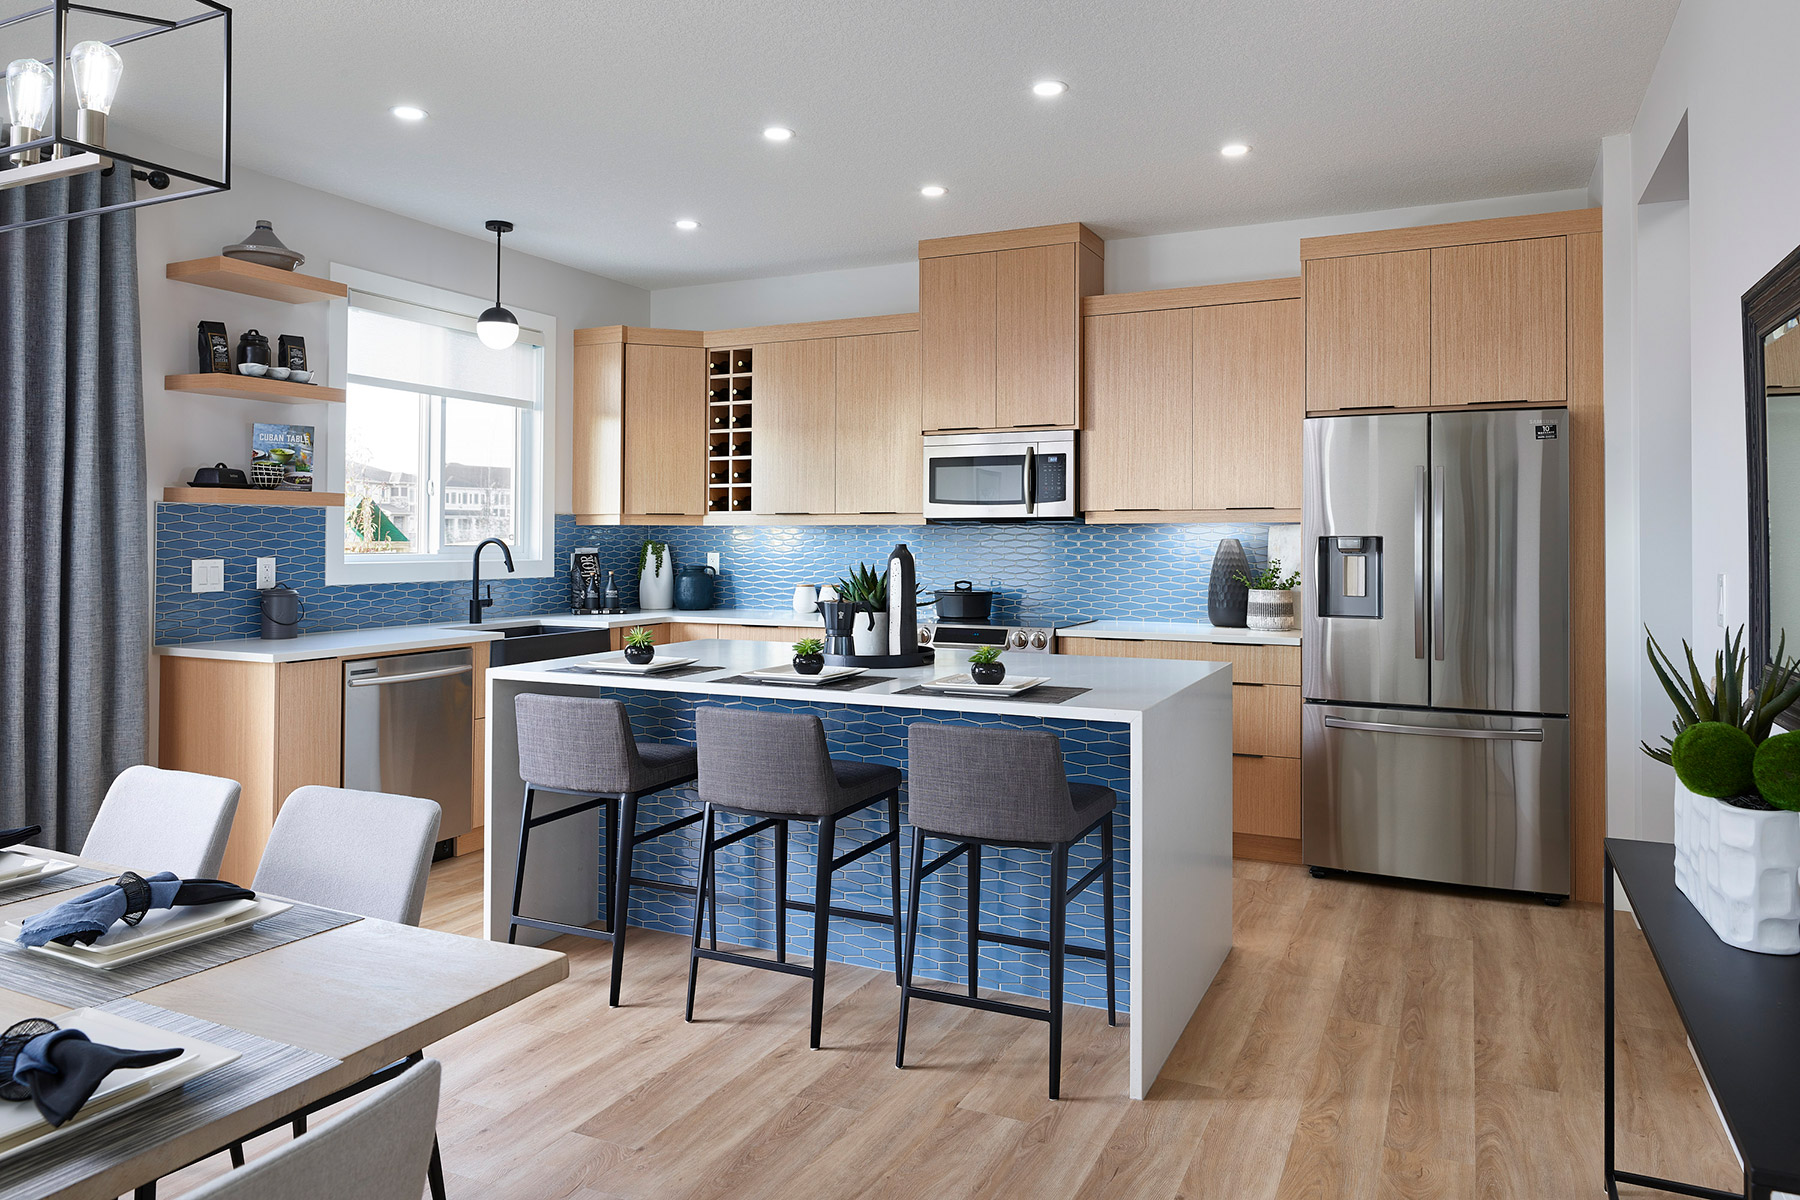 Monarch Plan Kitchen at Yorkville in Calgary Alberta by Mattamy Homes